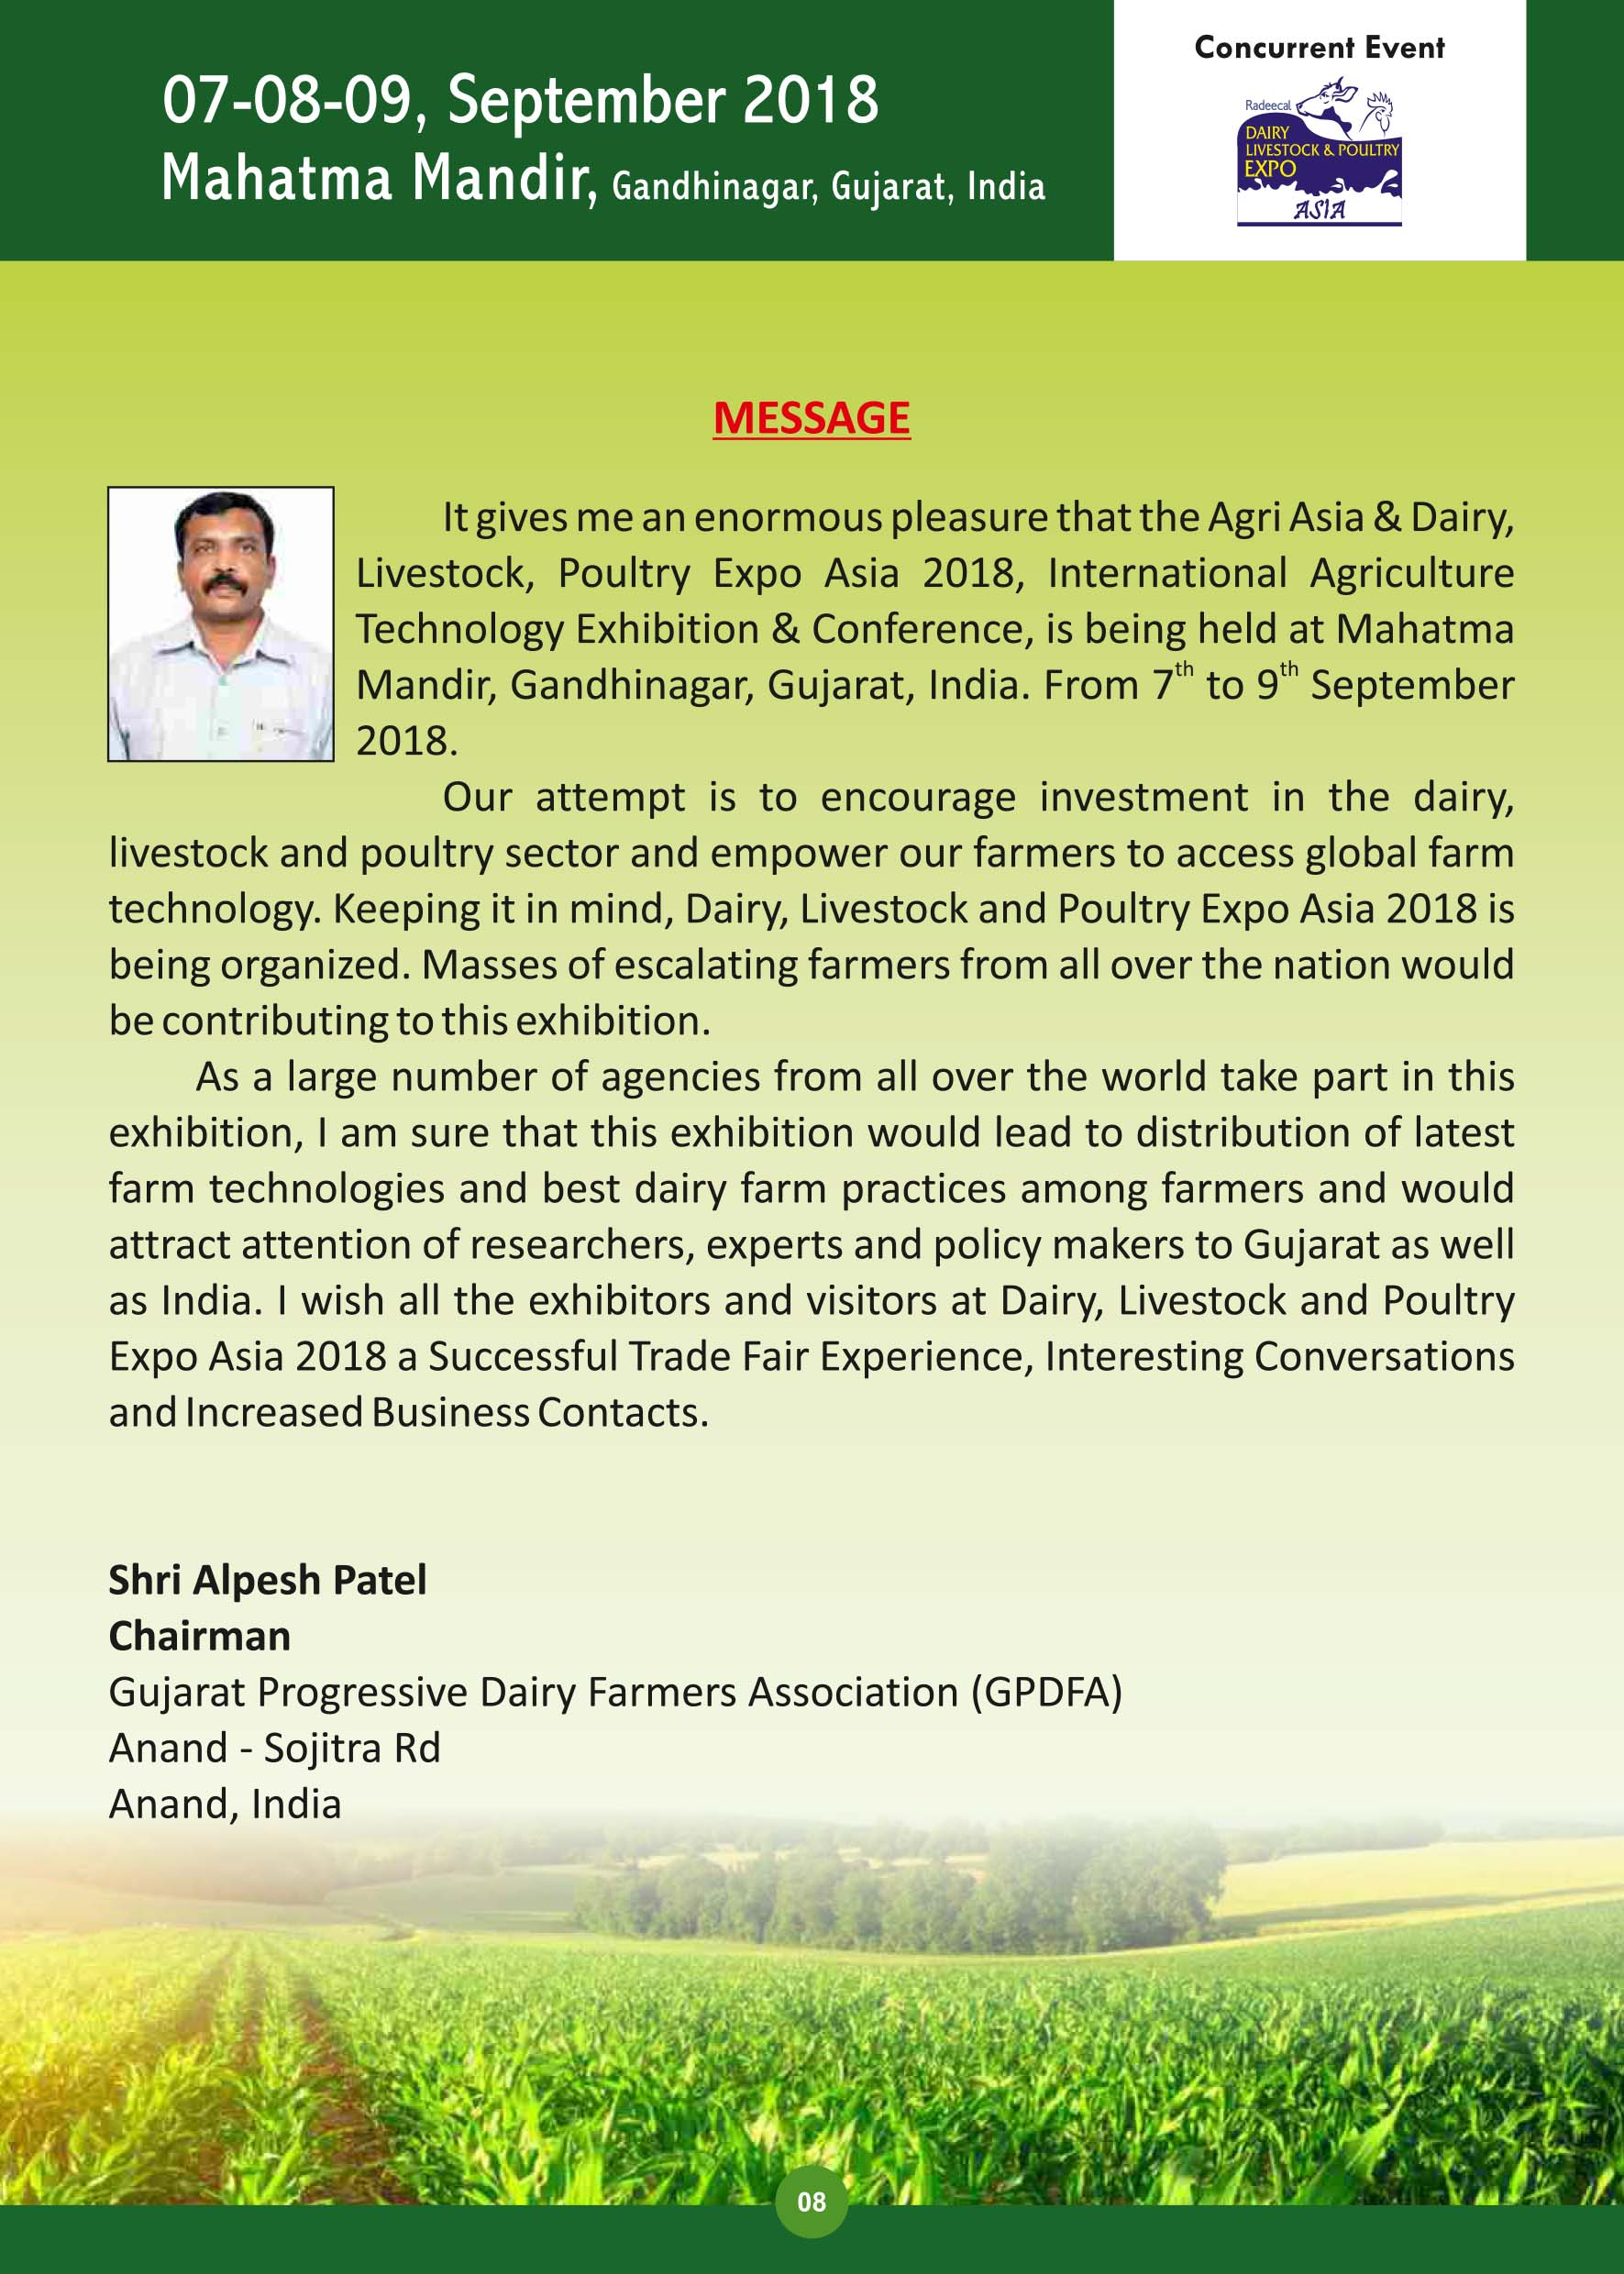 Agri Asia - Agriculture Technology Exhibition & Conference in India 2019